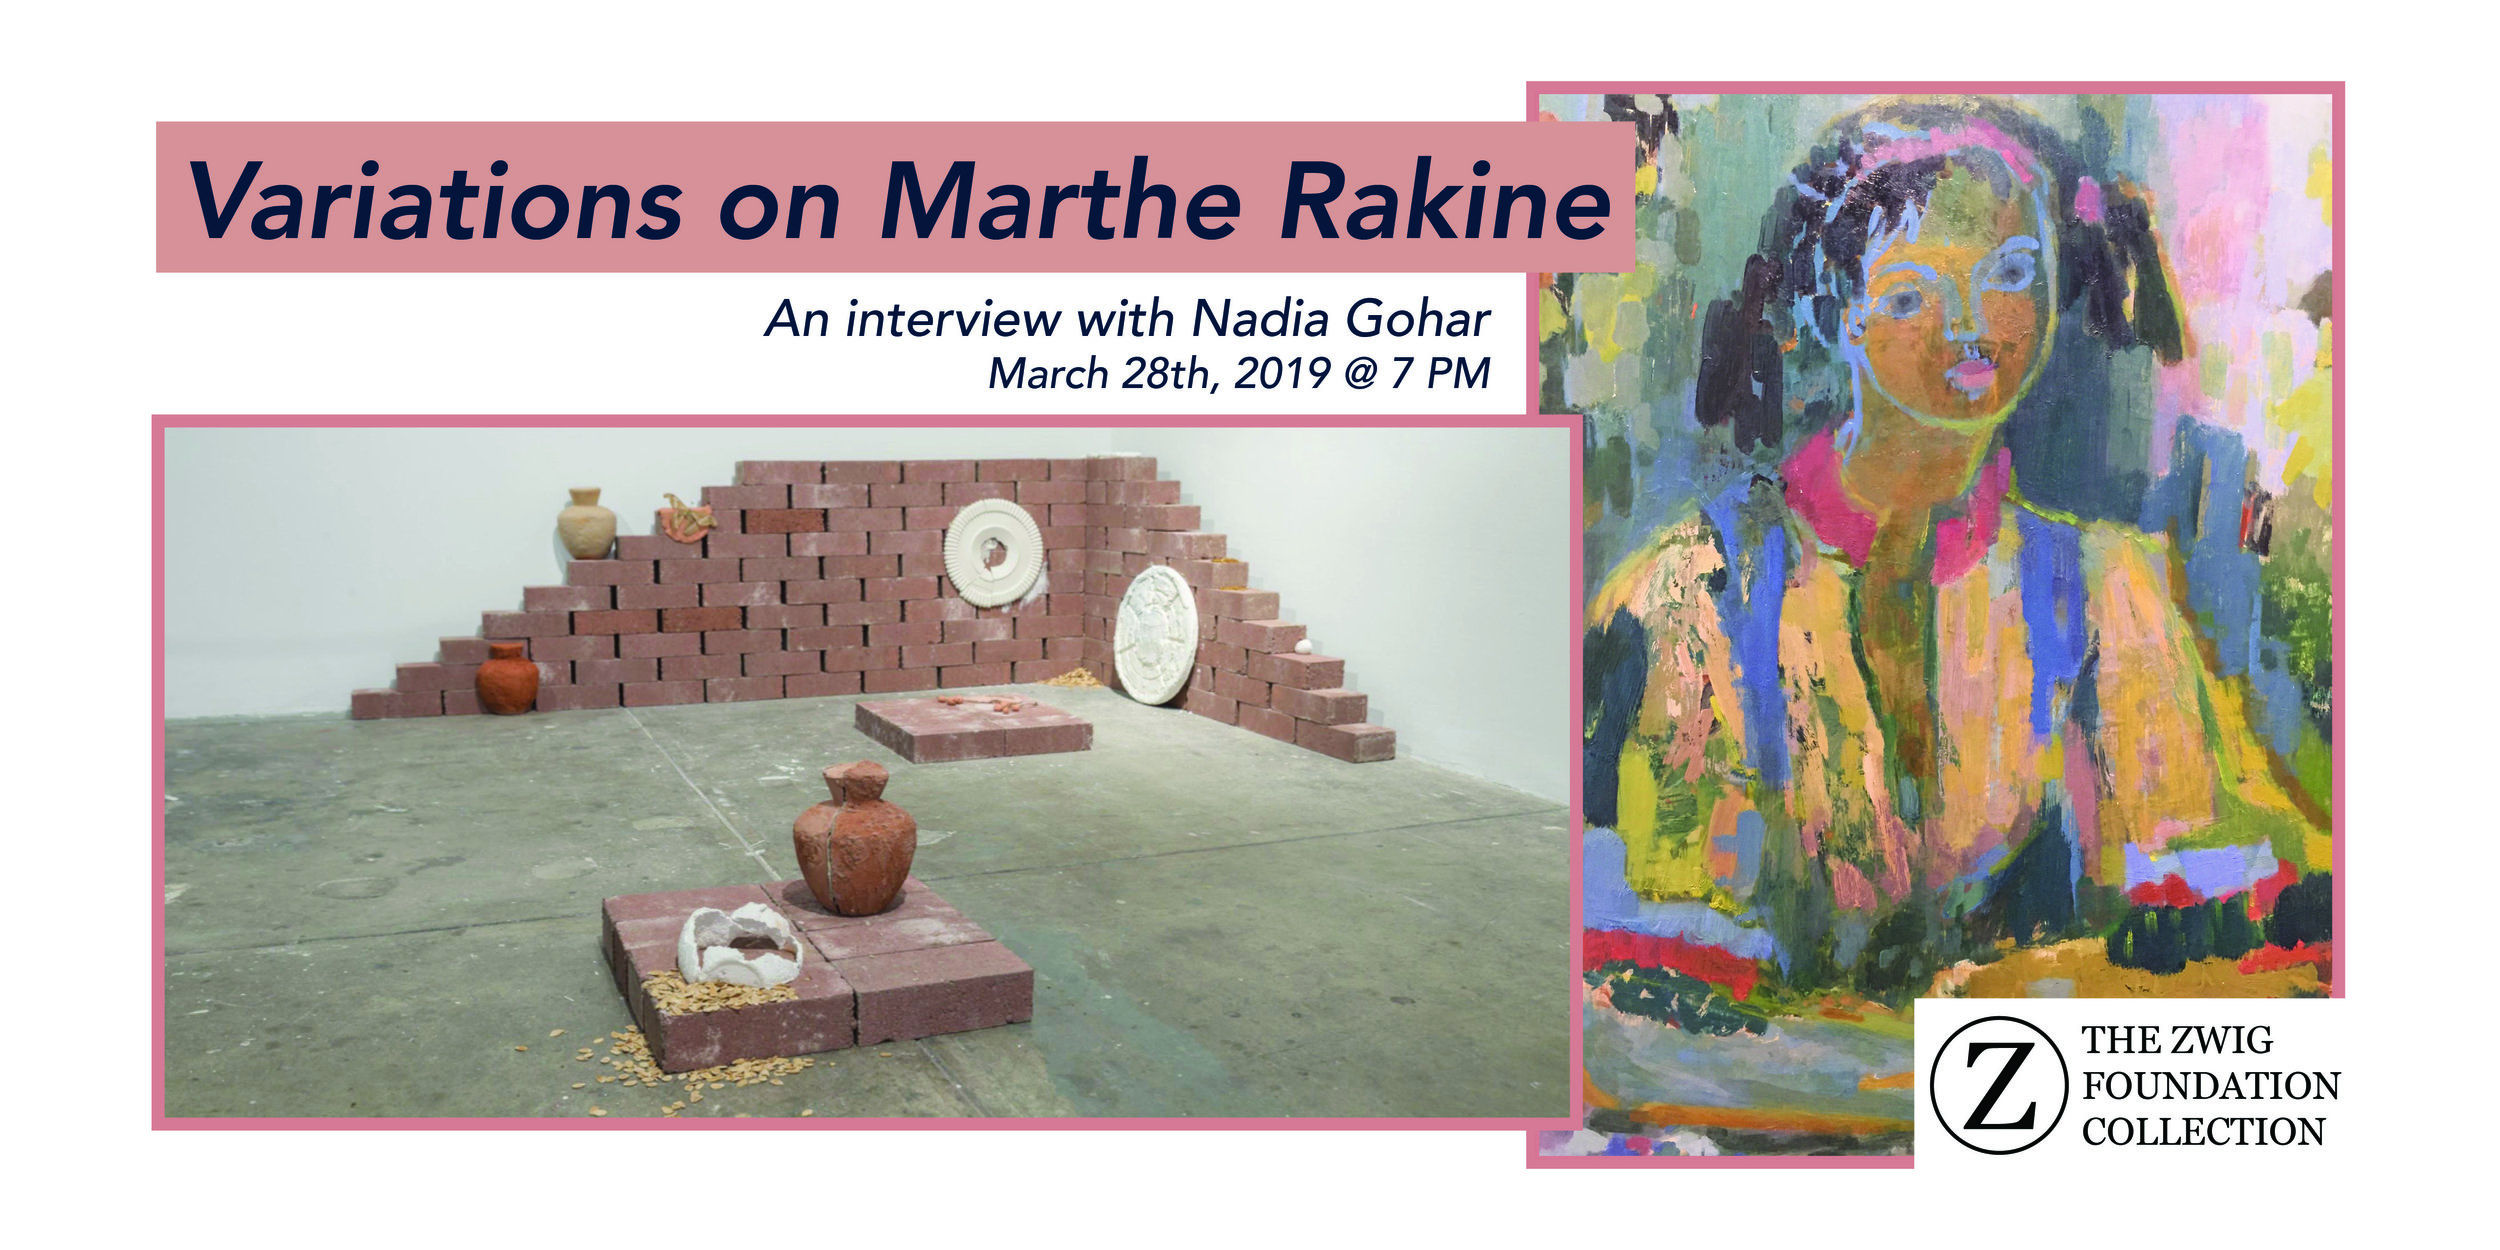 Variations on Marthe Rakine - Nadia Gohar is a Toronto-based artist who explores themes of memory, migration, and objecthood through a multi-disciplinary approach. She received her BFA from the Massachusetts College of Art and Design and has had solo exhibitions with spaces such as SOIL Gallery in Seattle and the Table in Toronto. As well, Nadia has participated in group exhibitions, most recently at the Queens Museum in New York.On March 28th, we spoke with Gohar about the little-known Canadian painter, Marthe Rakine. Through their relaxed self-expression we chatted about the many similarities these two artists have in common.